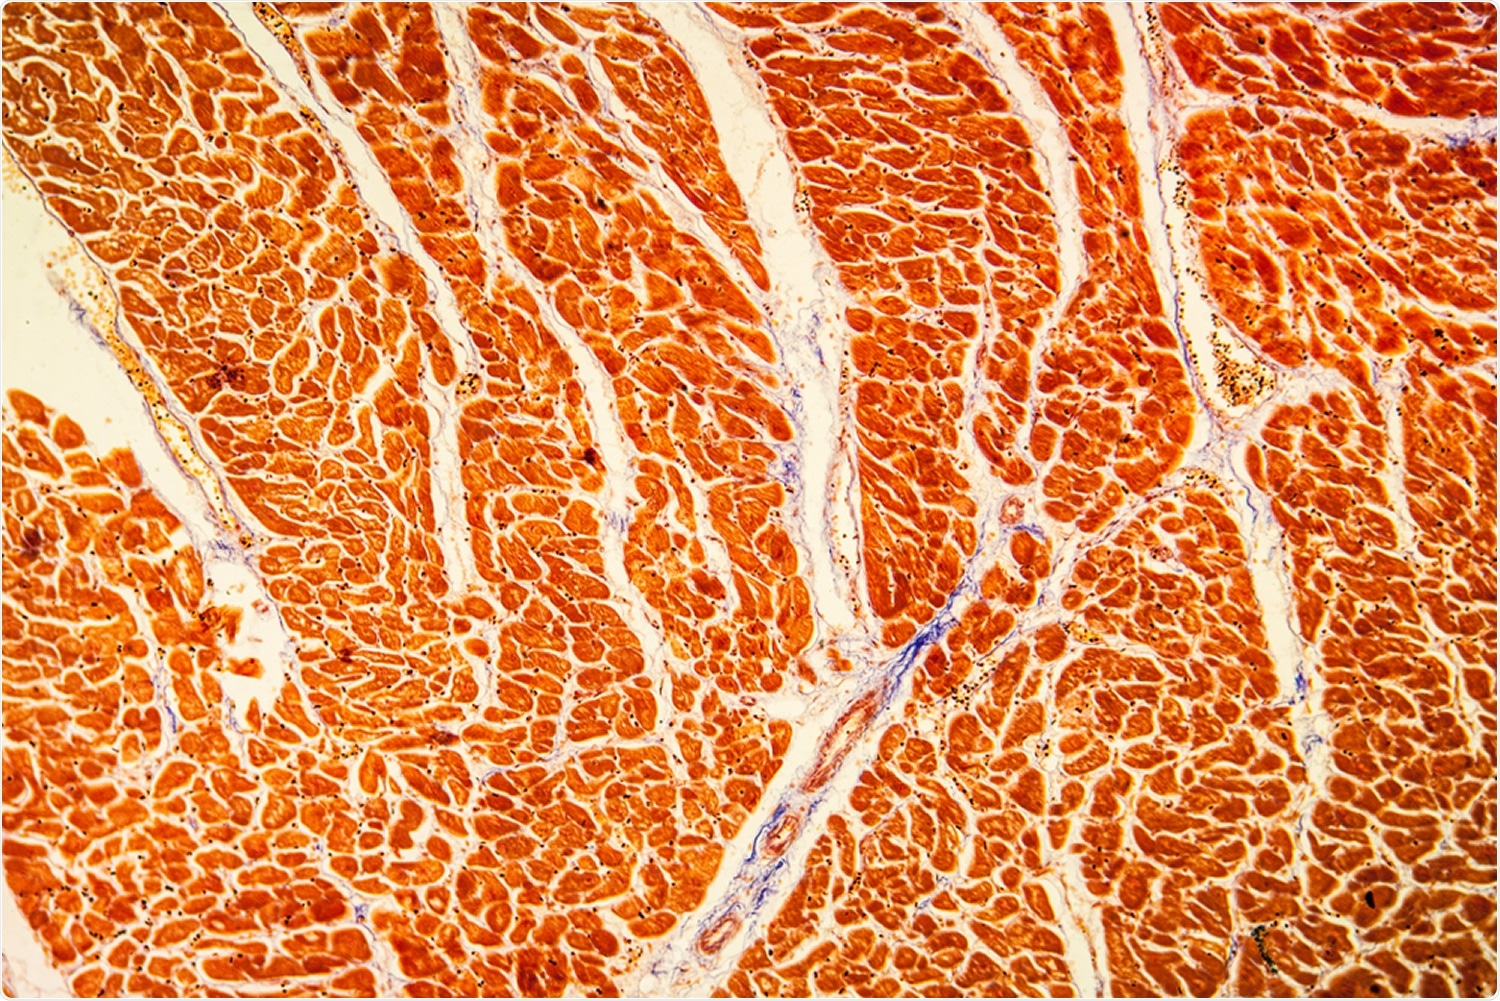 Myocarditis and Pericarditis Following mRNA COVID-19 Vaccination. Image Credit: Dr. Norbert Lange / Shutterstock